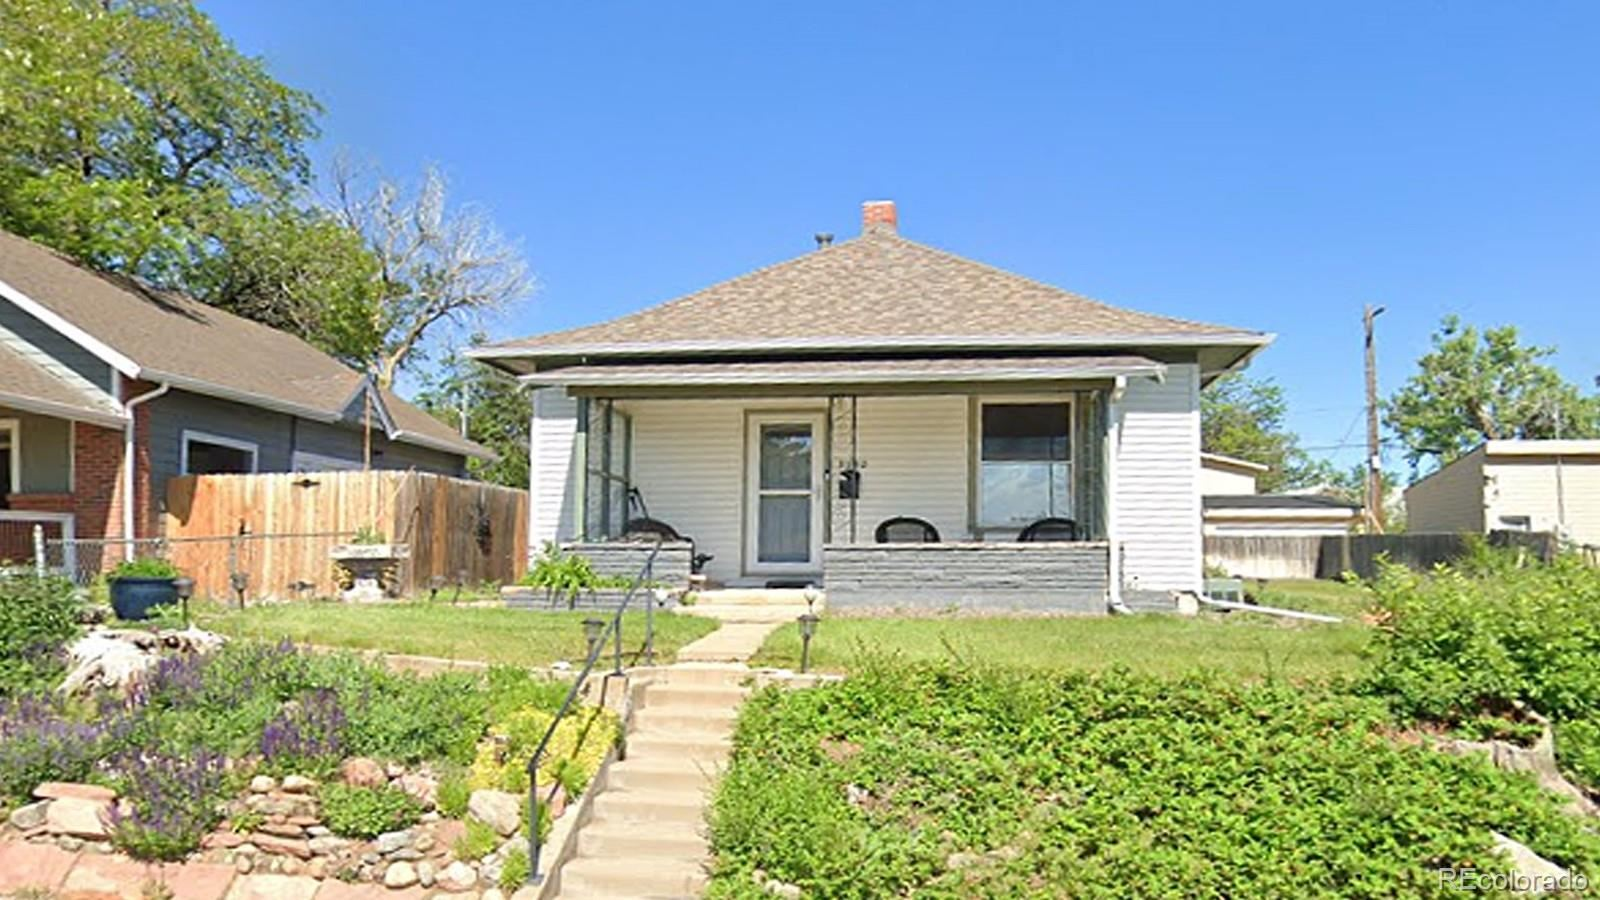 3580 S Emerson Street, Englewood, CO 80113 - #: 8777358